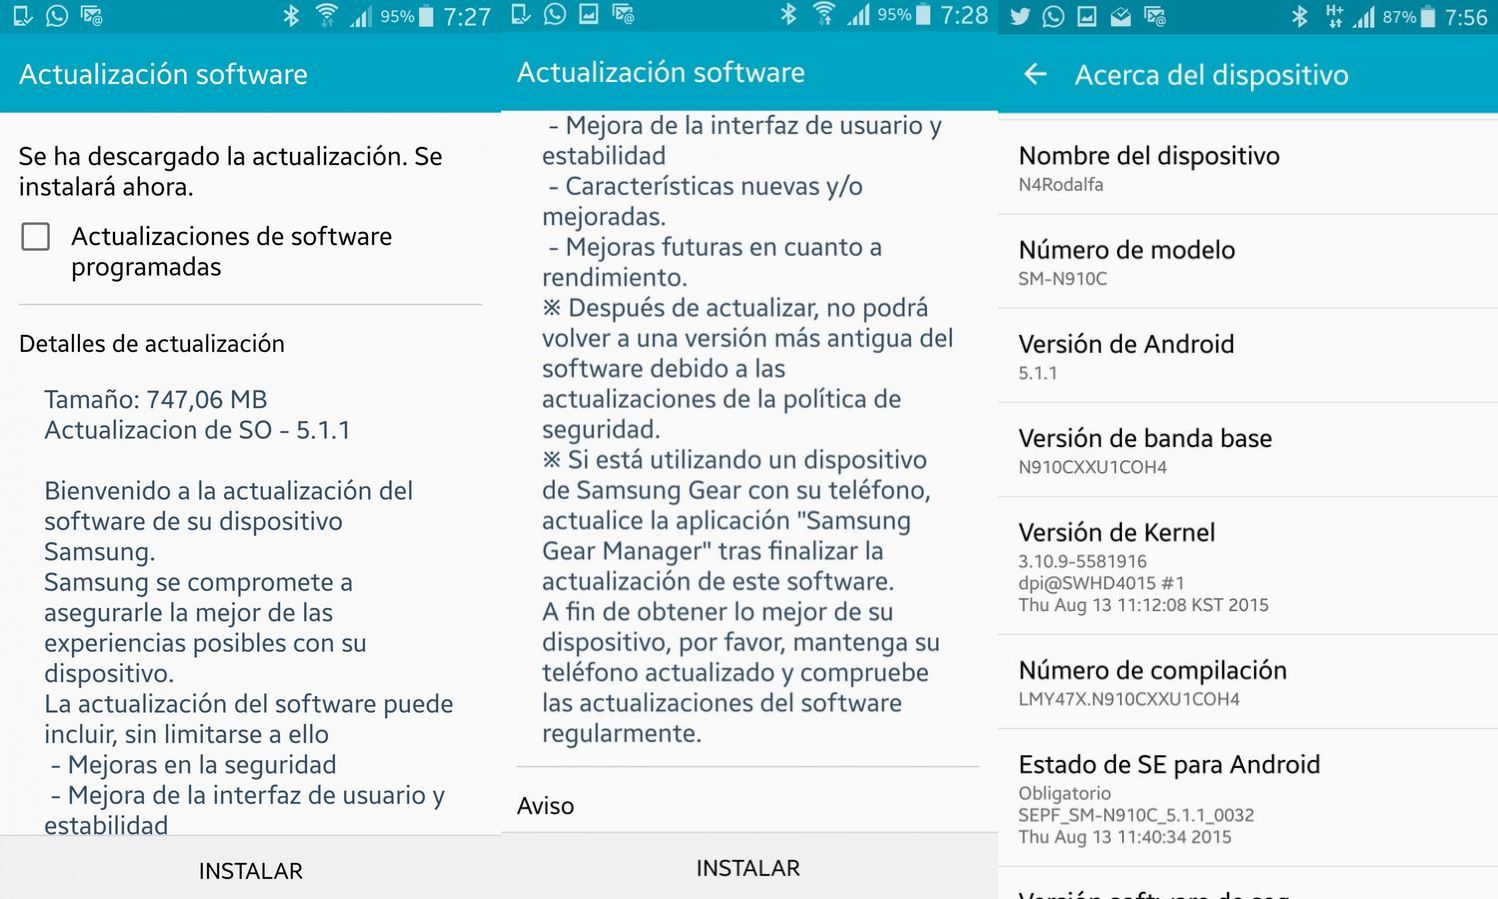 Samsung releases Android 5 1 1 OTA update for Galaxy Note 4